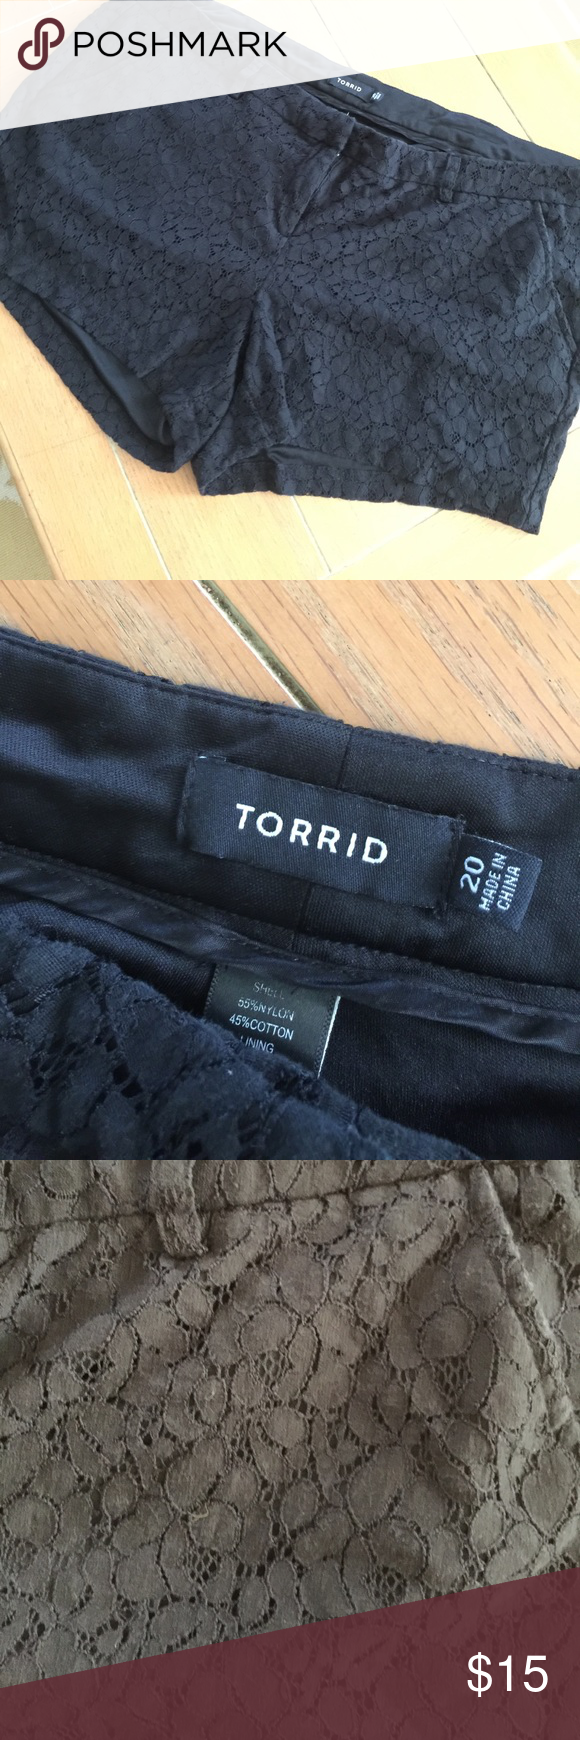 Torrid black lace shorts lined Super cute excellent condition lace black torrid shorts. Size 20. You will love them torrid Shorts